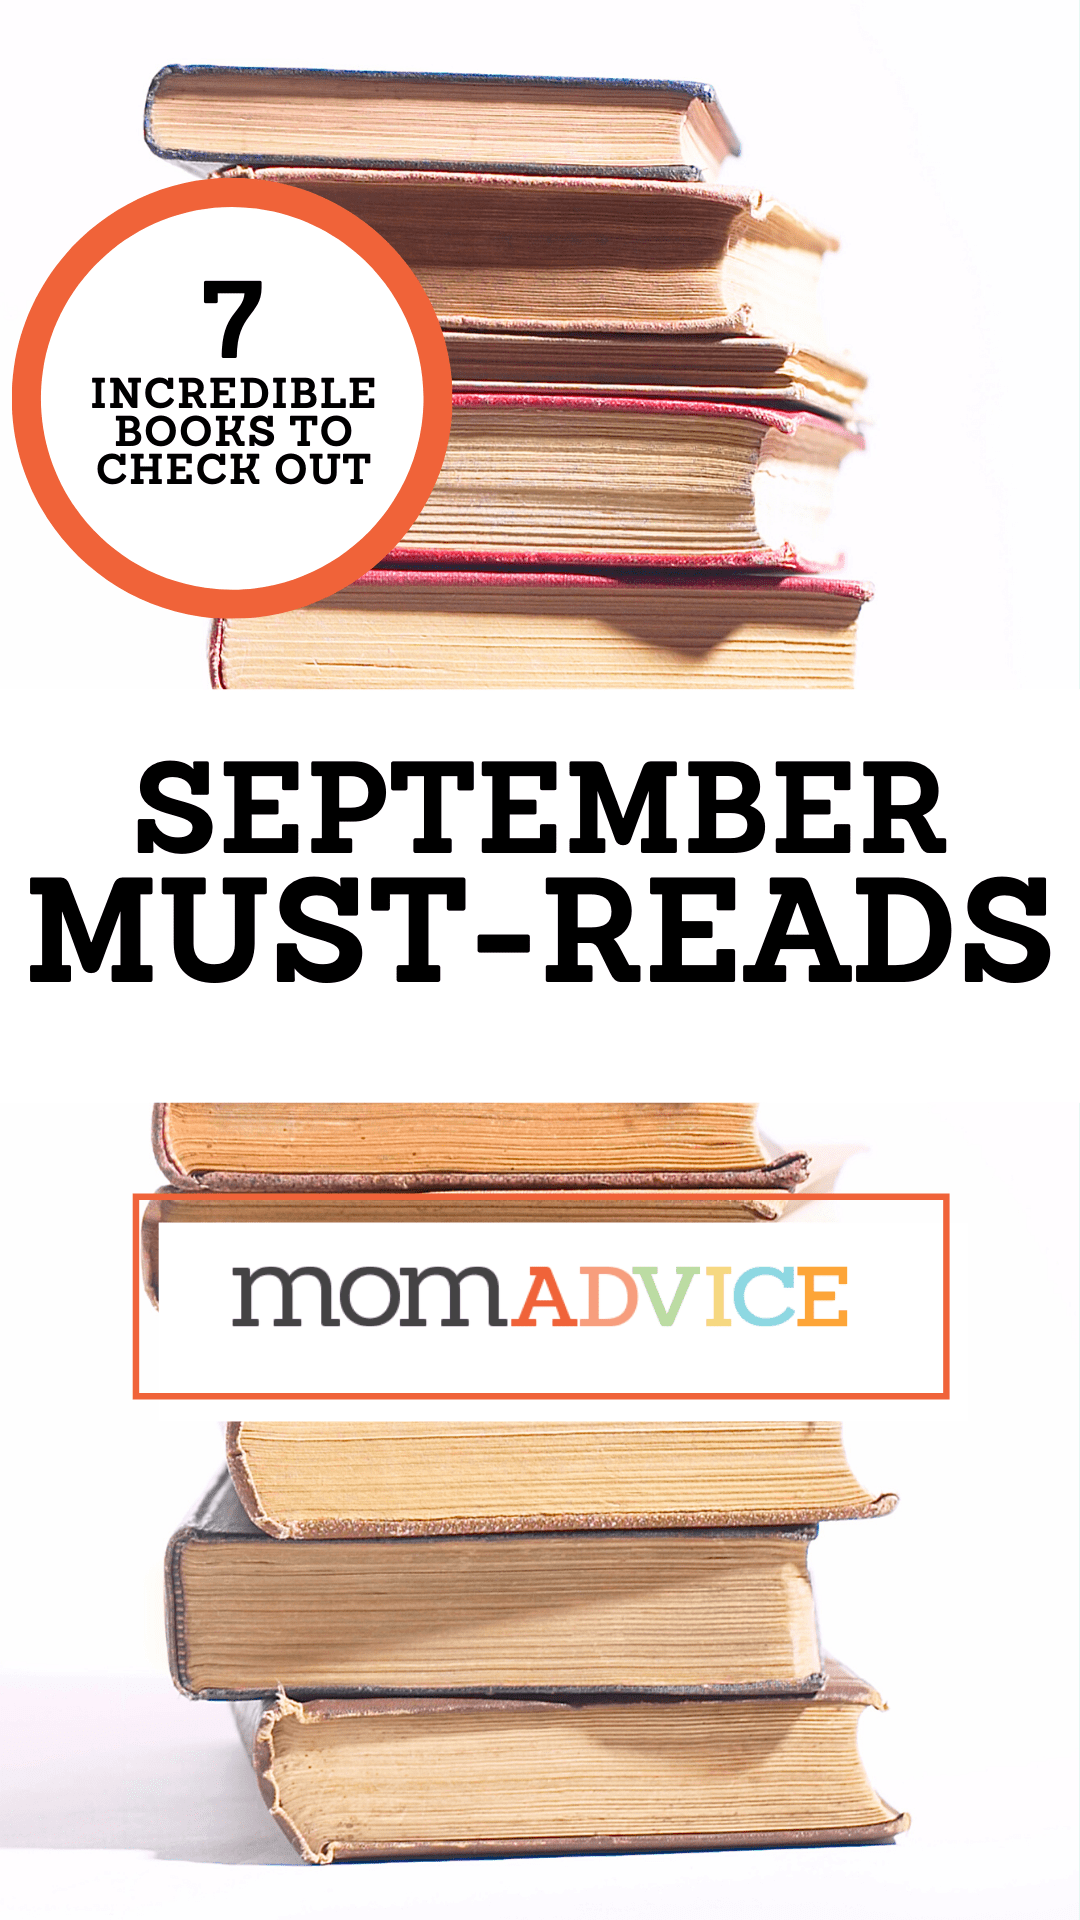 September 2020 Must-Reads from MomAdvice.com